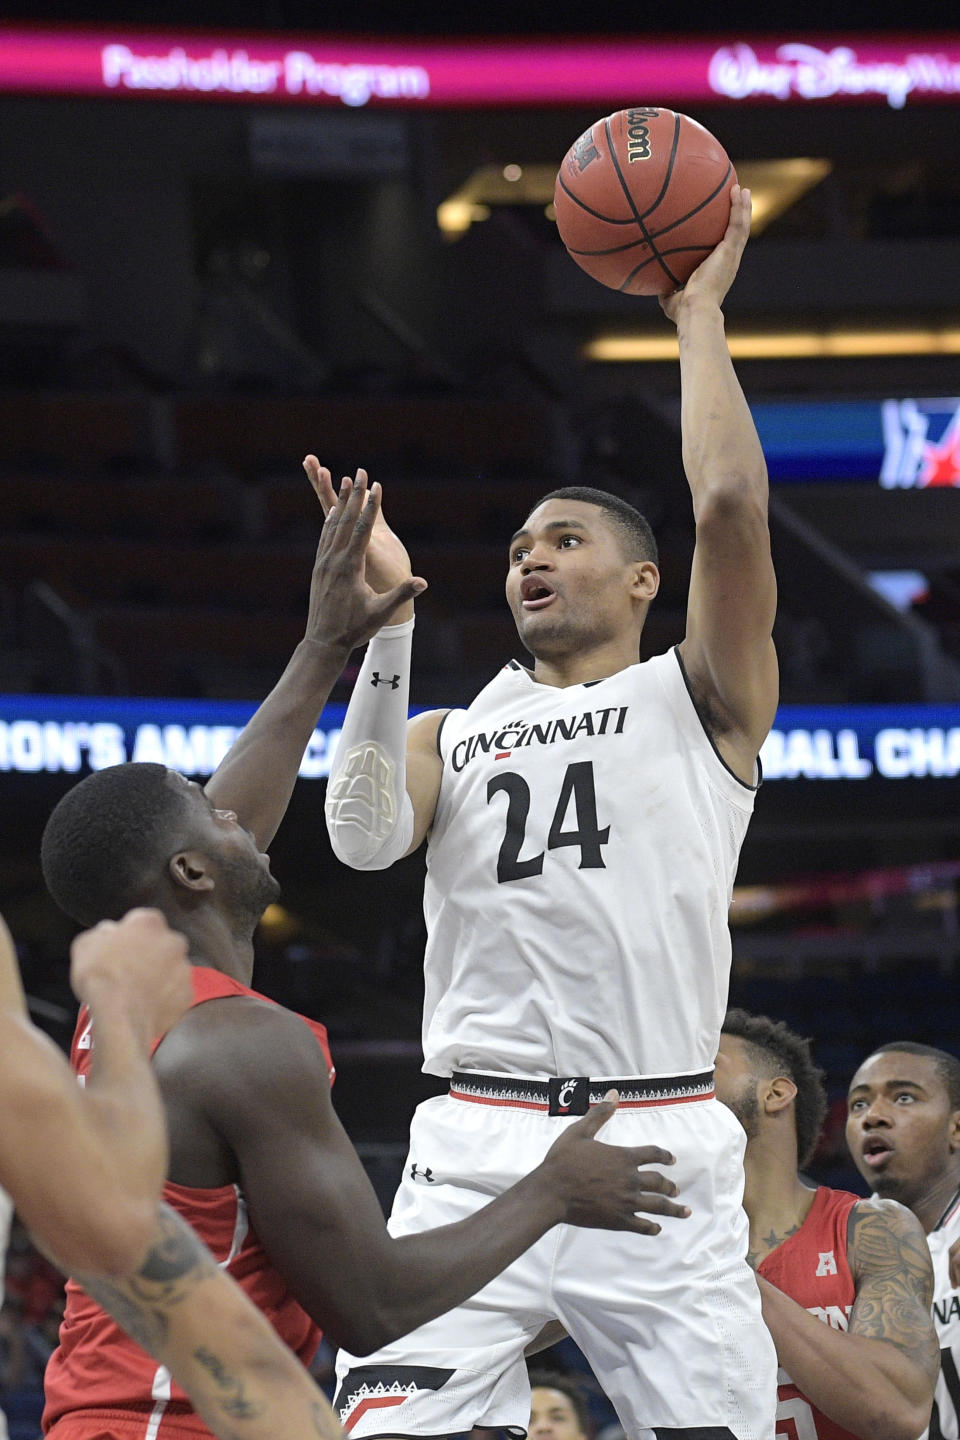 Cincinnati forward Kyle Washington (24) goes up to shoot in front of Houston forward Nura Zanna (13) during the first half of an NCAA college basketball championship game at the American Athletic Conference tournament Sunday, March 11, 2018, in Orlando, Fla. (AP Photo/Phelan M. Ebenhack)